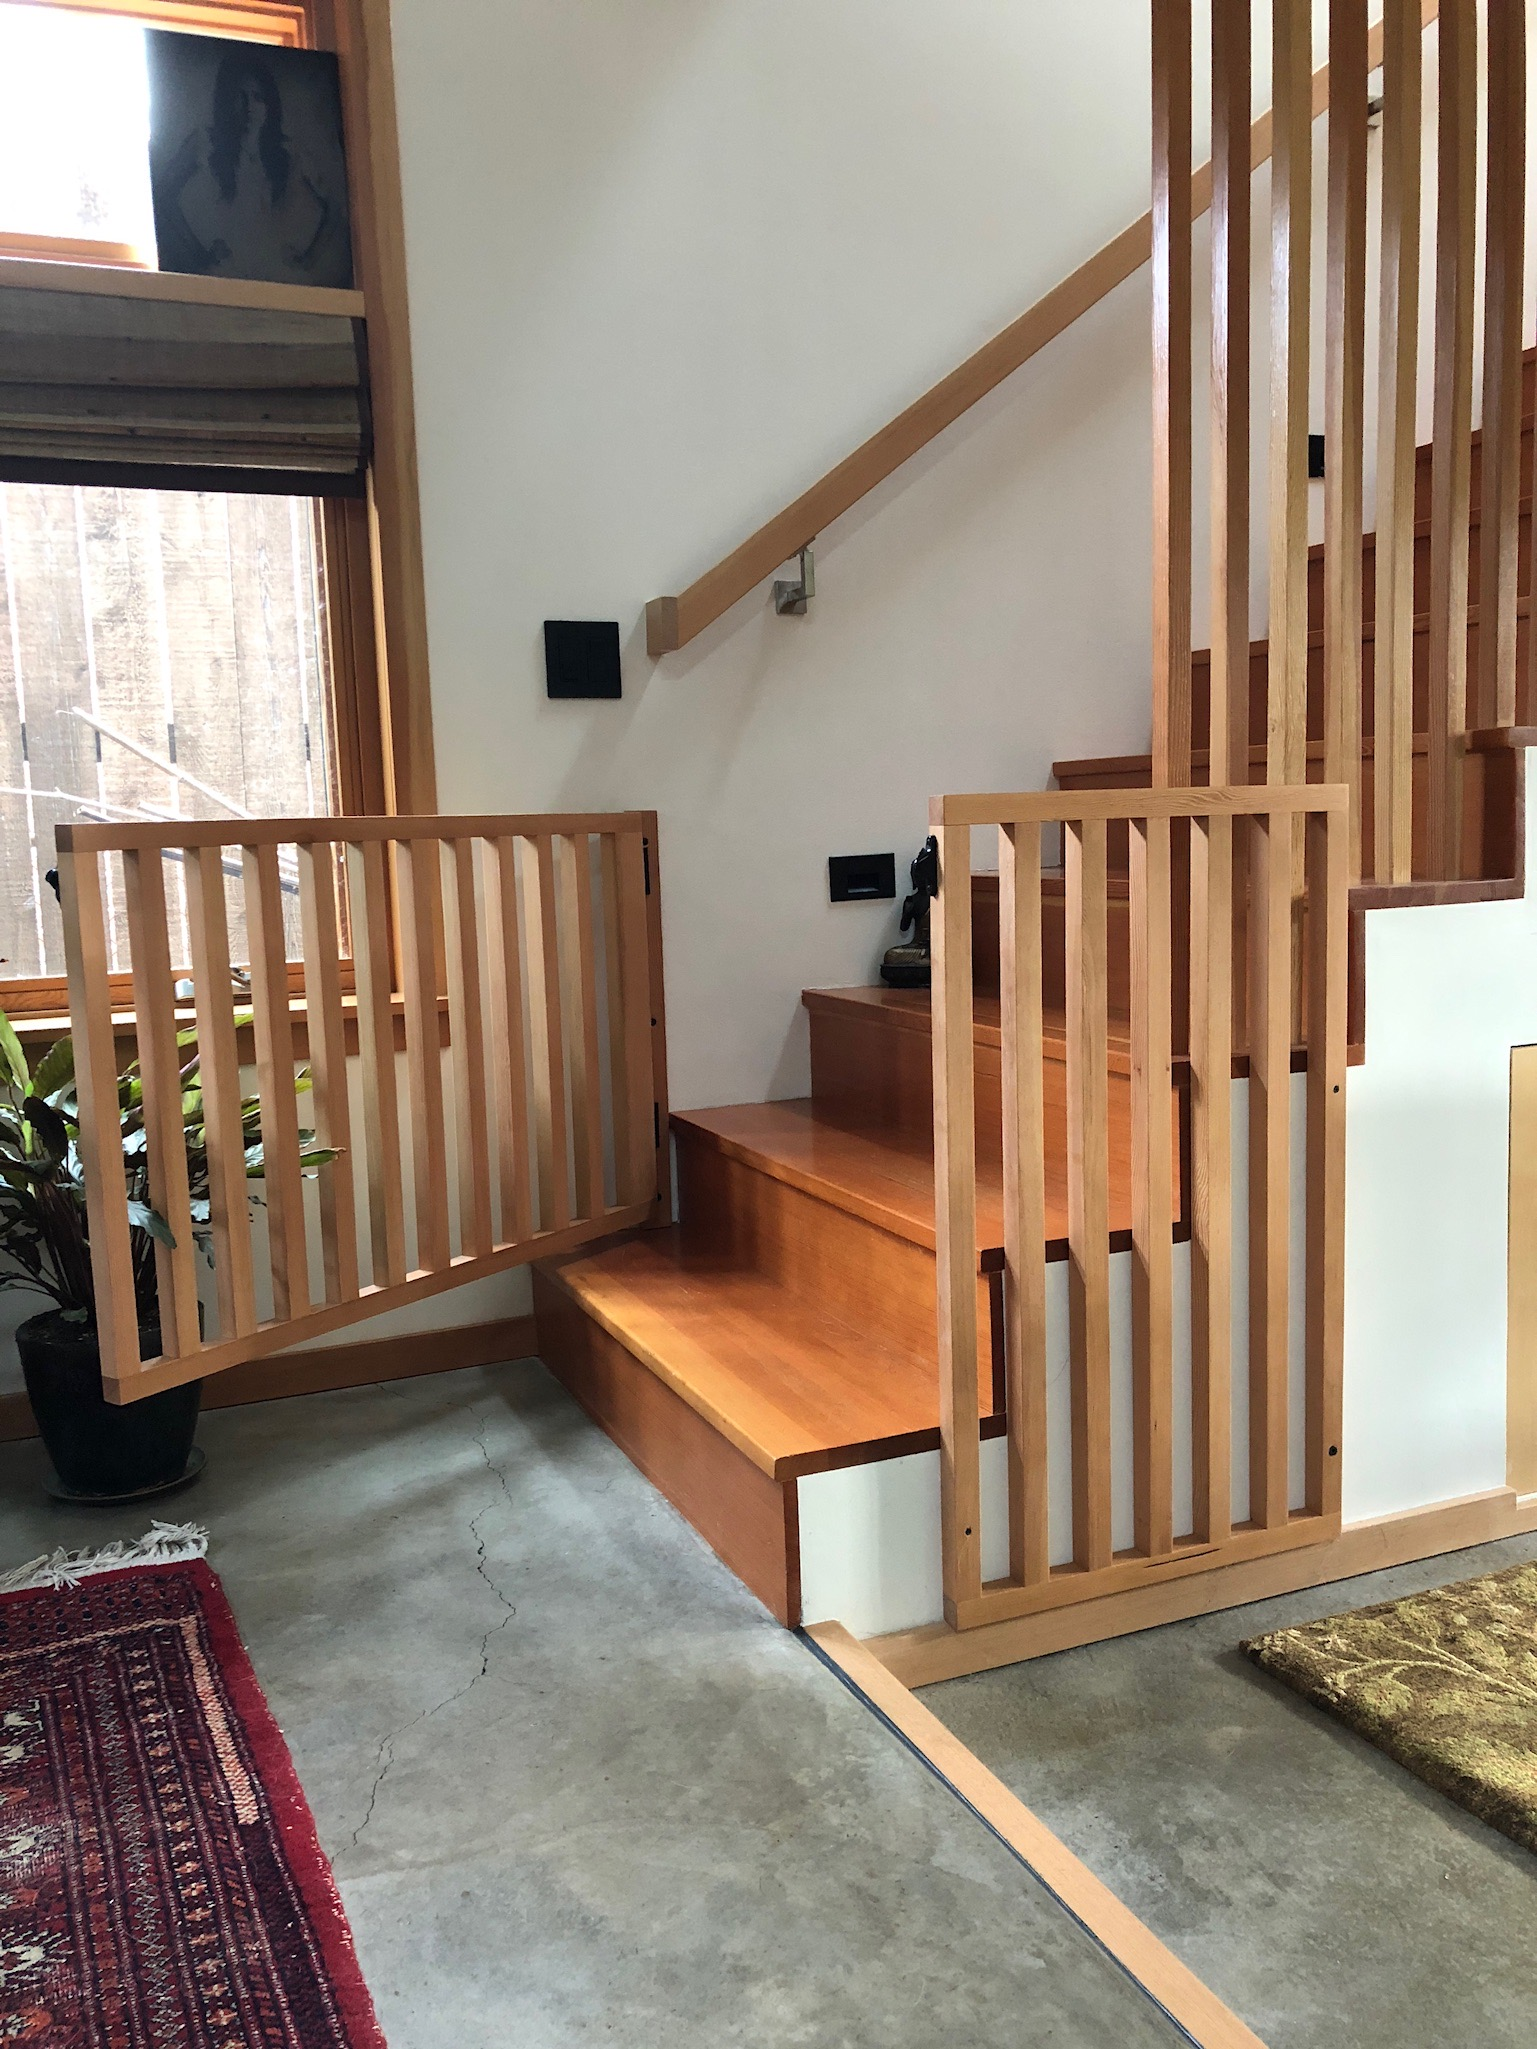 This custom baby gate was designed to perfectly align with the existing vertical slats and spacing. It is a beautiful piece that is not an eyesore. Its design blends seamlessly into the home and looks as though it was part of the original design.